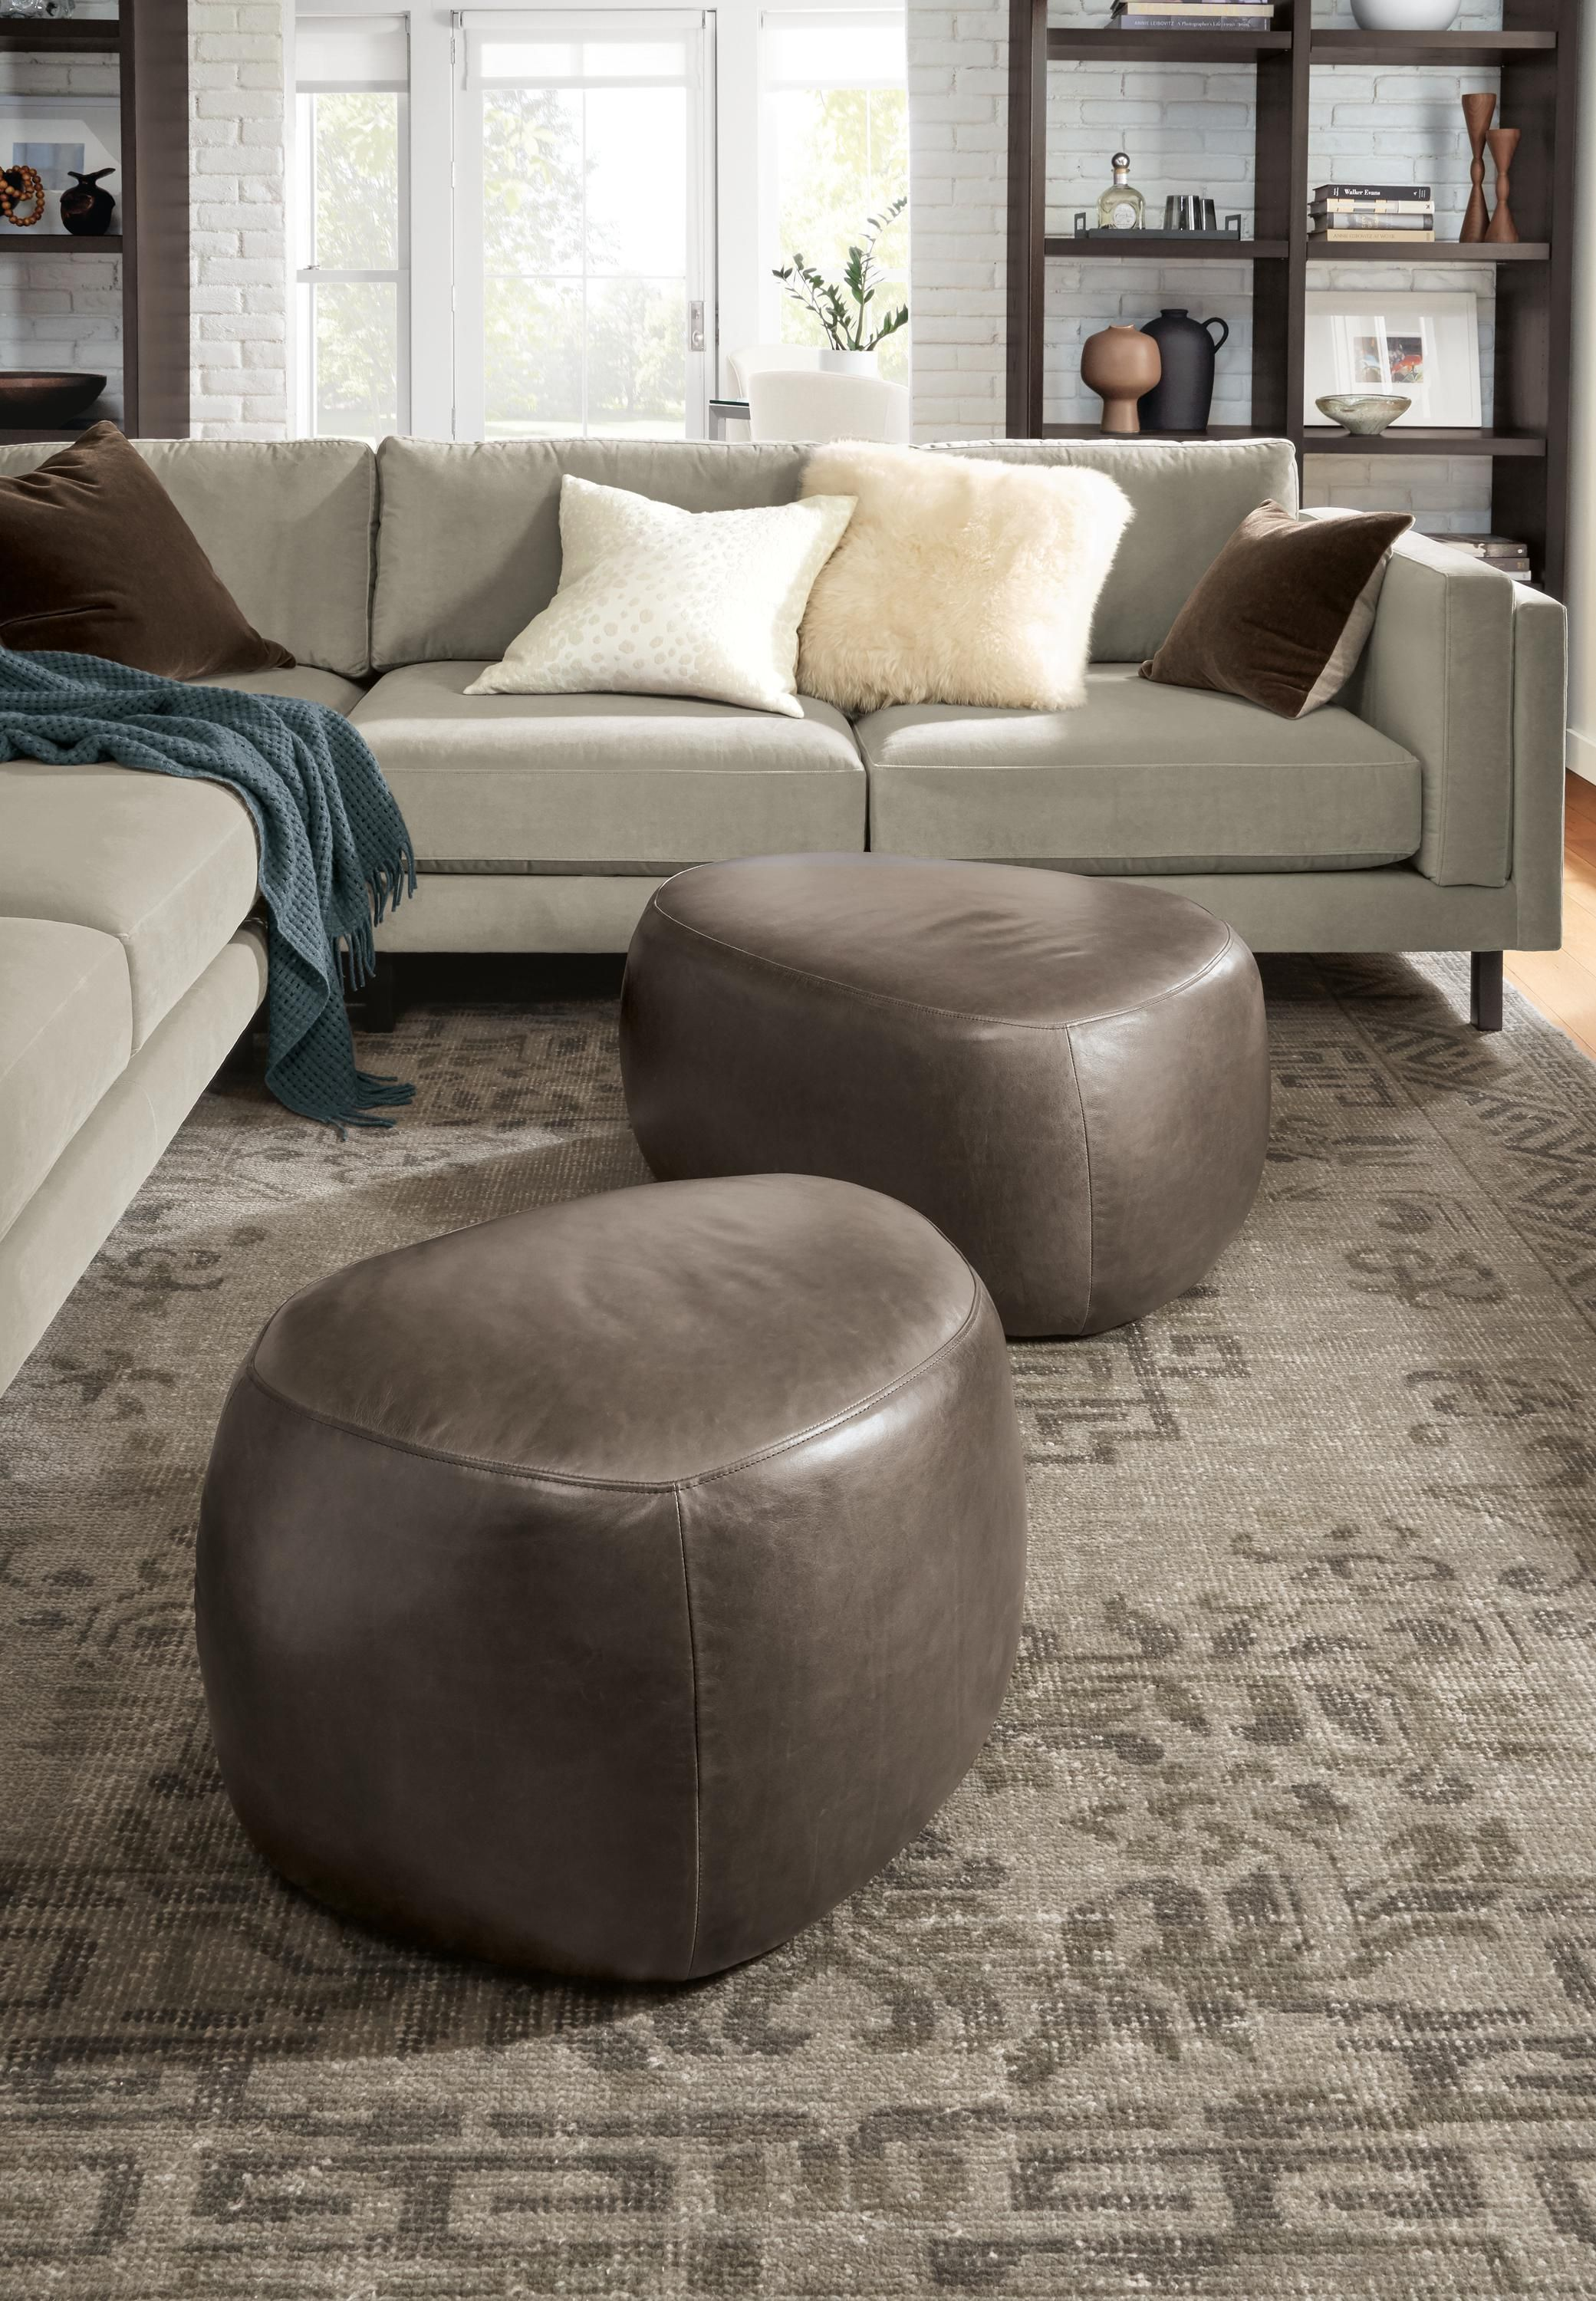 Asher leather ottomans modern ottomans footstools